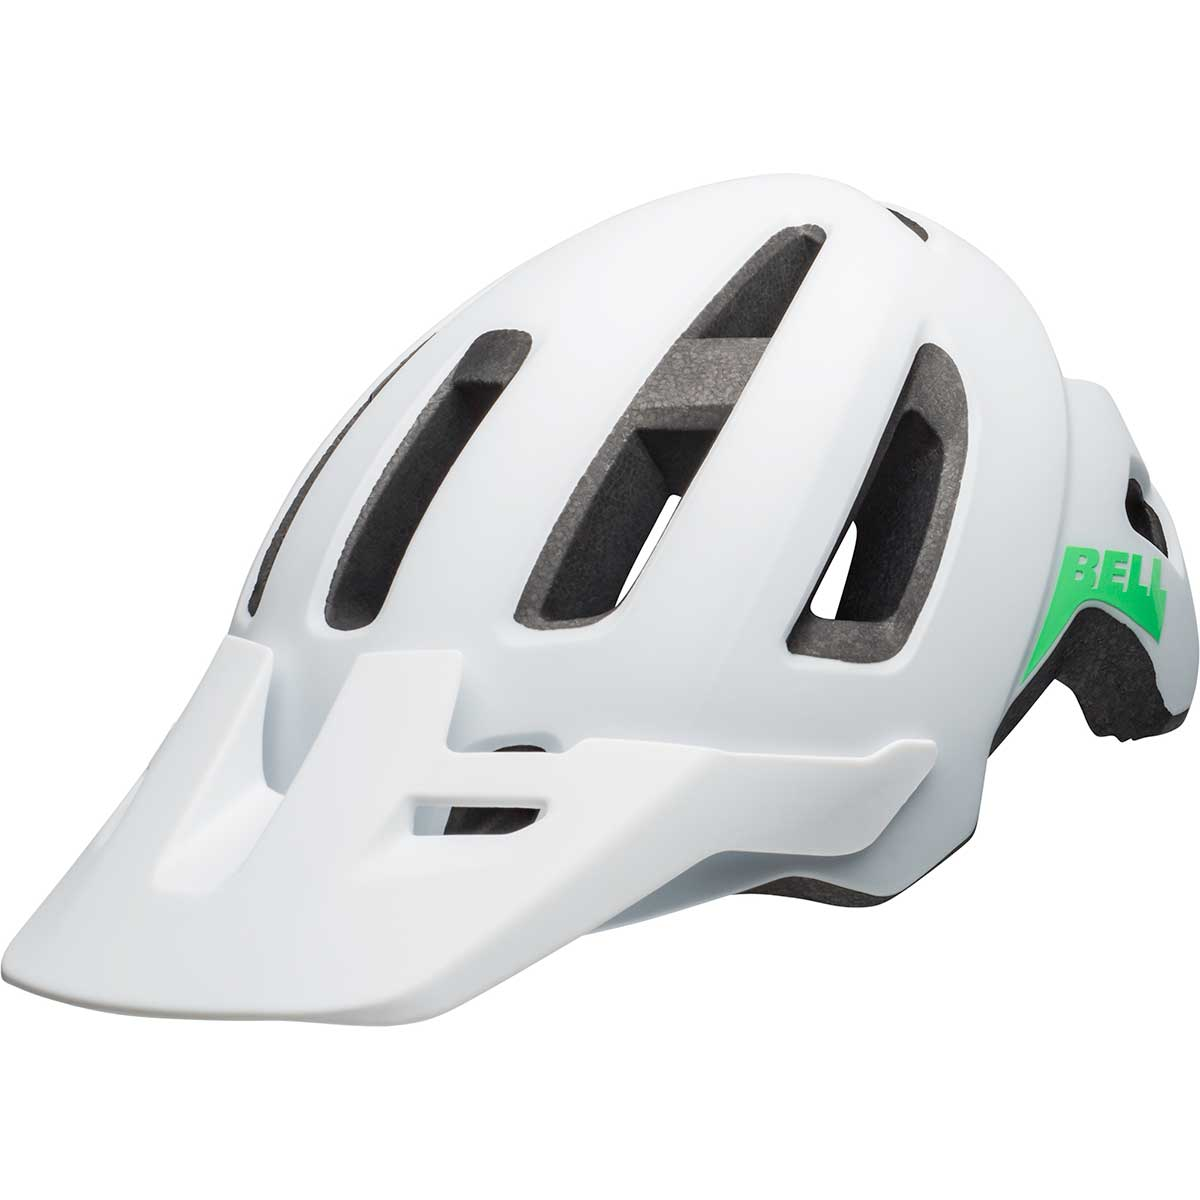 Bell women's Nomad MIPS W bike helmet in Matte White and Mint